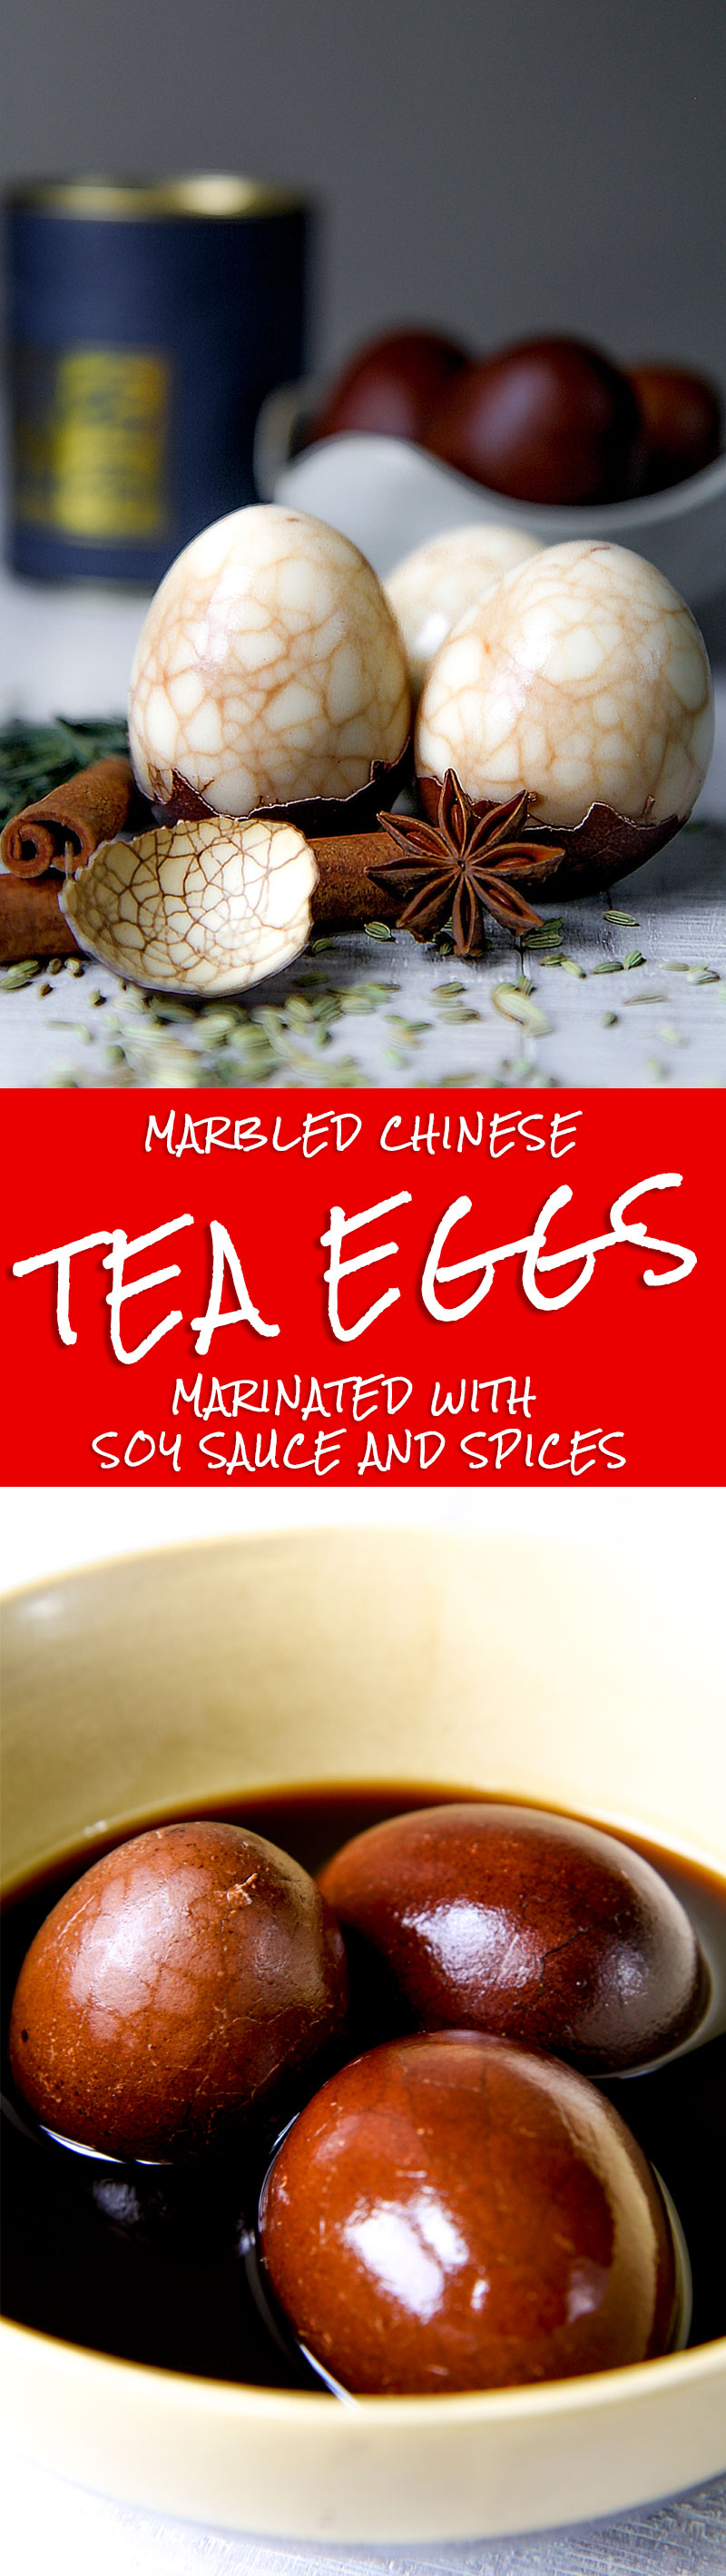 MARBLED CHINESE TEA EGGS RECIPE